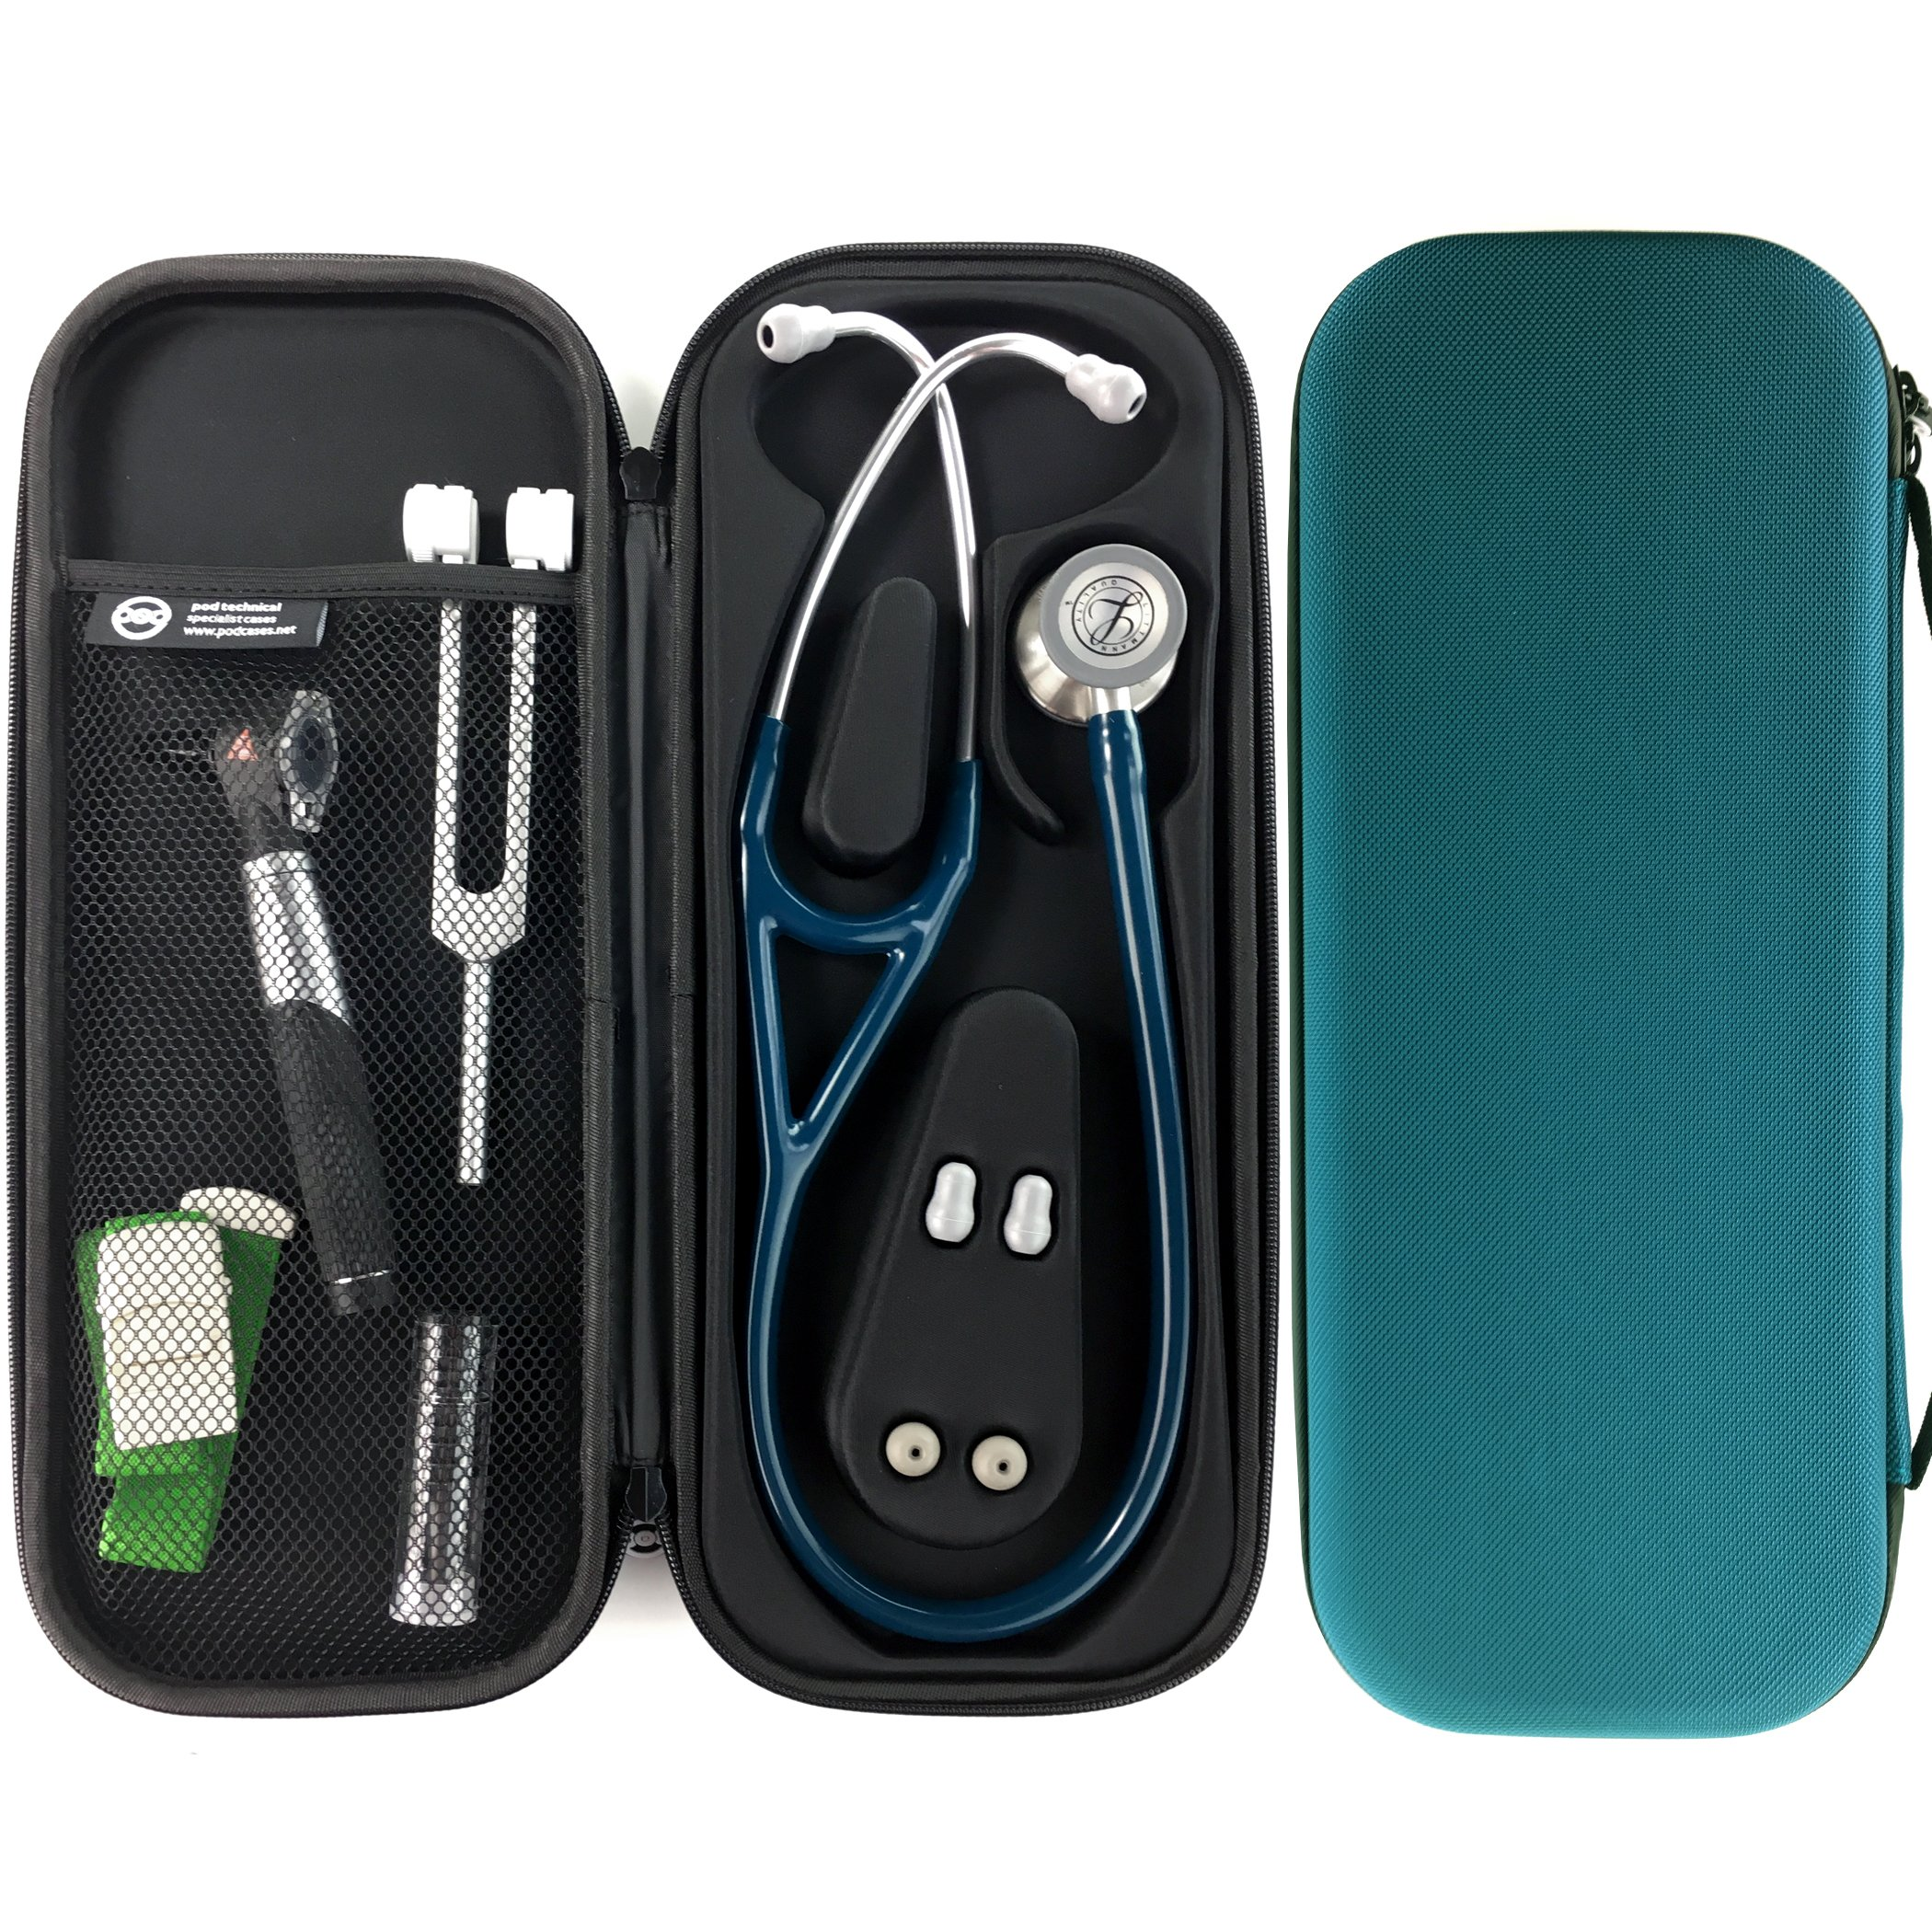 Image result for stethoscope case